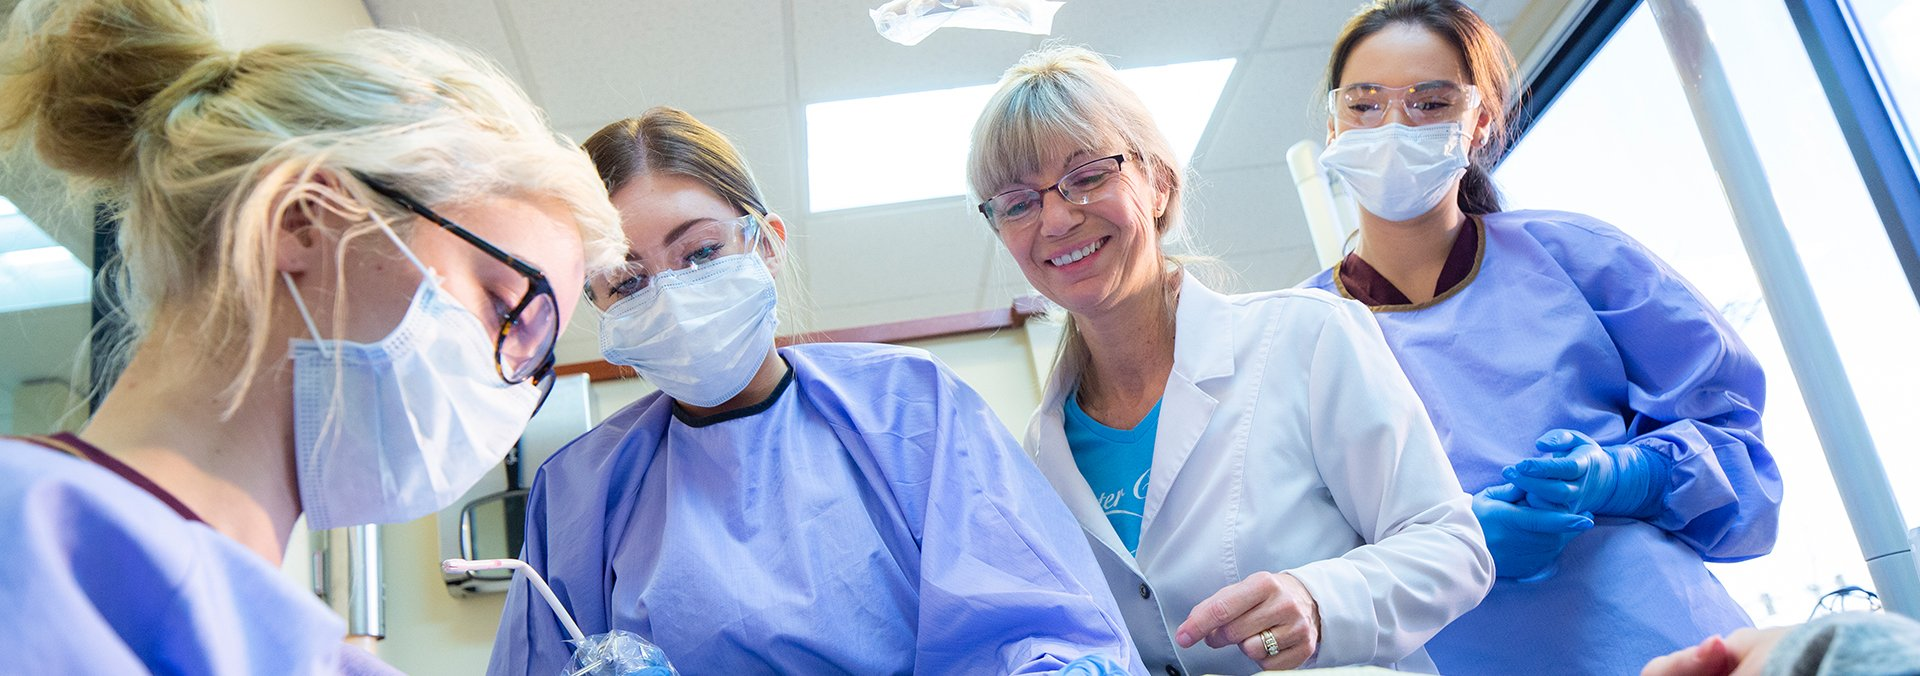 dental assisting teacher demonstrates